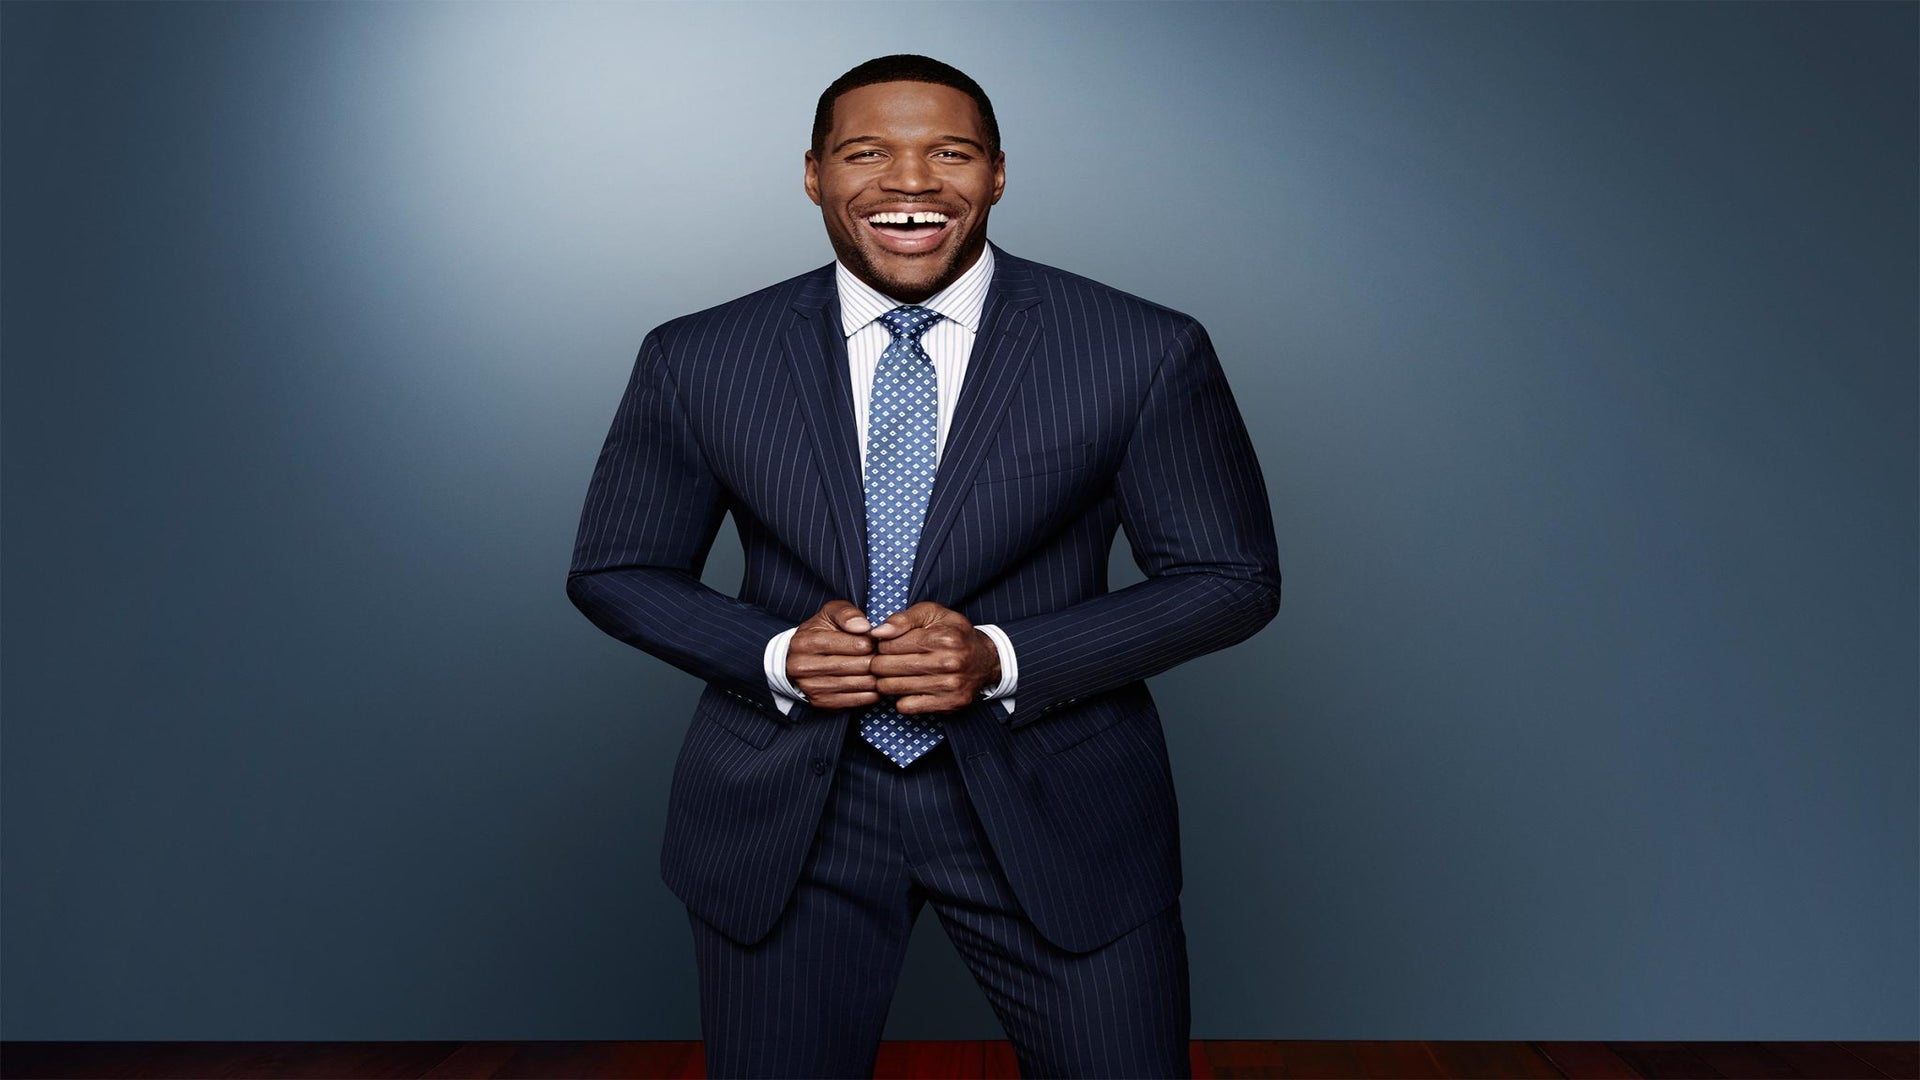 5 Questions for Michael Strahan on Overcoming Fear and Finding Happiness